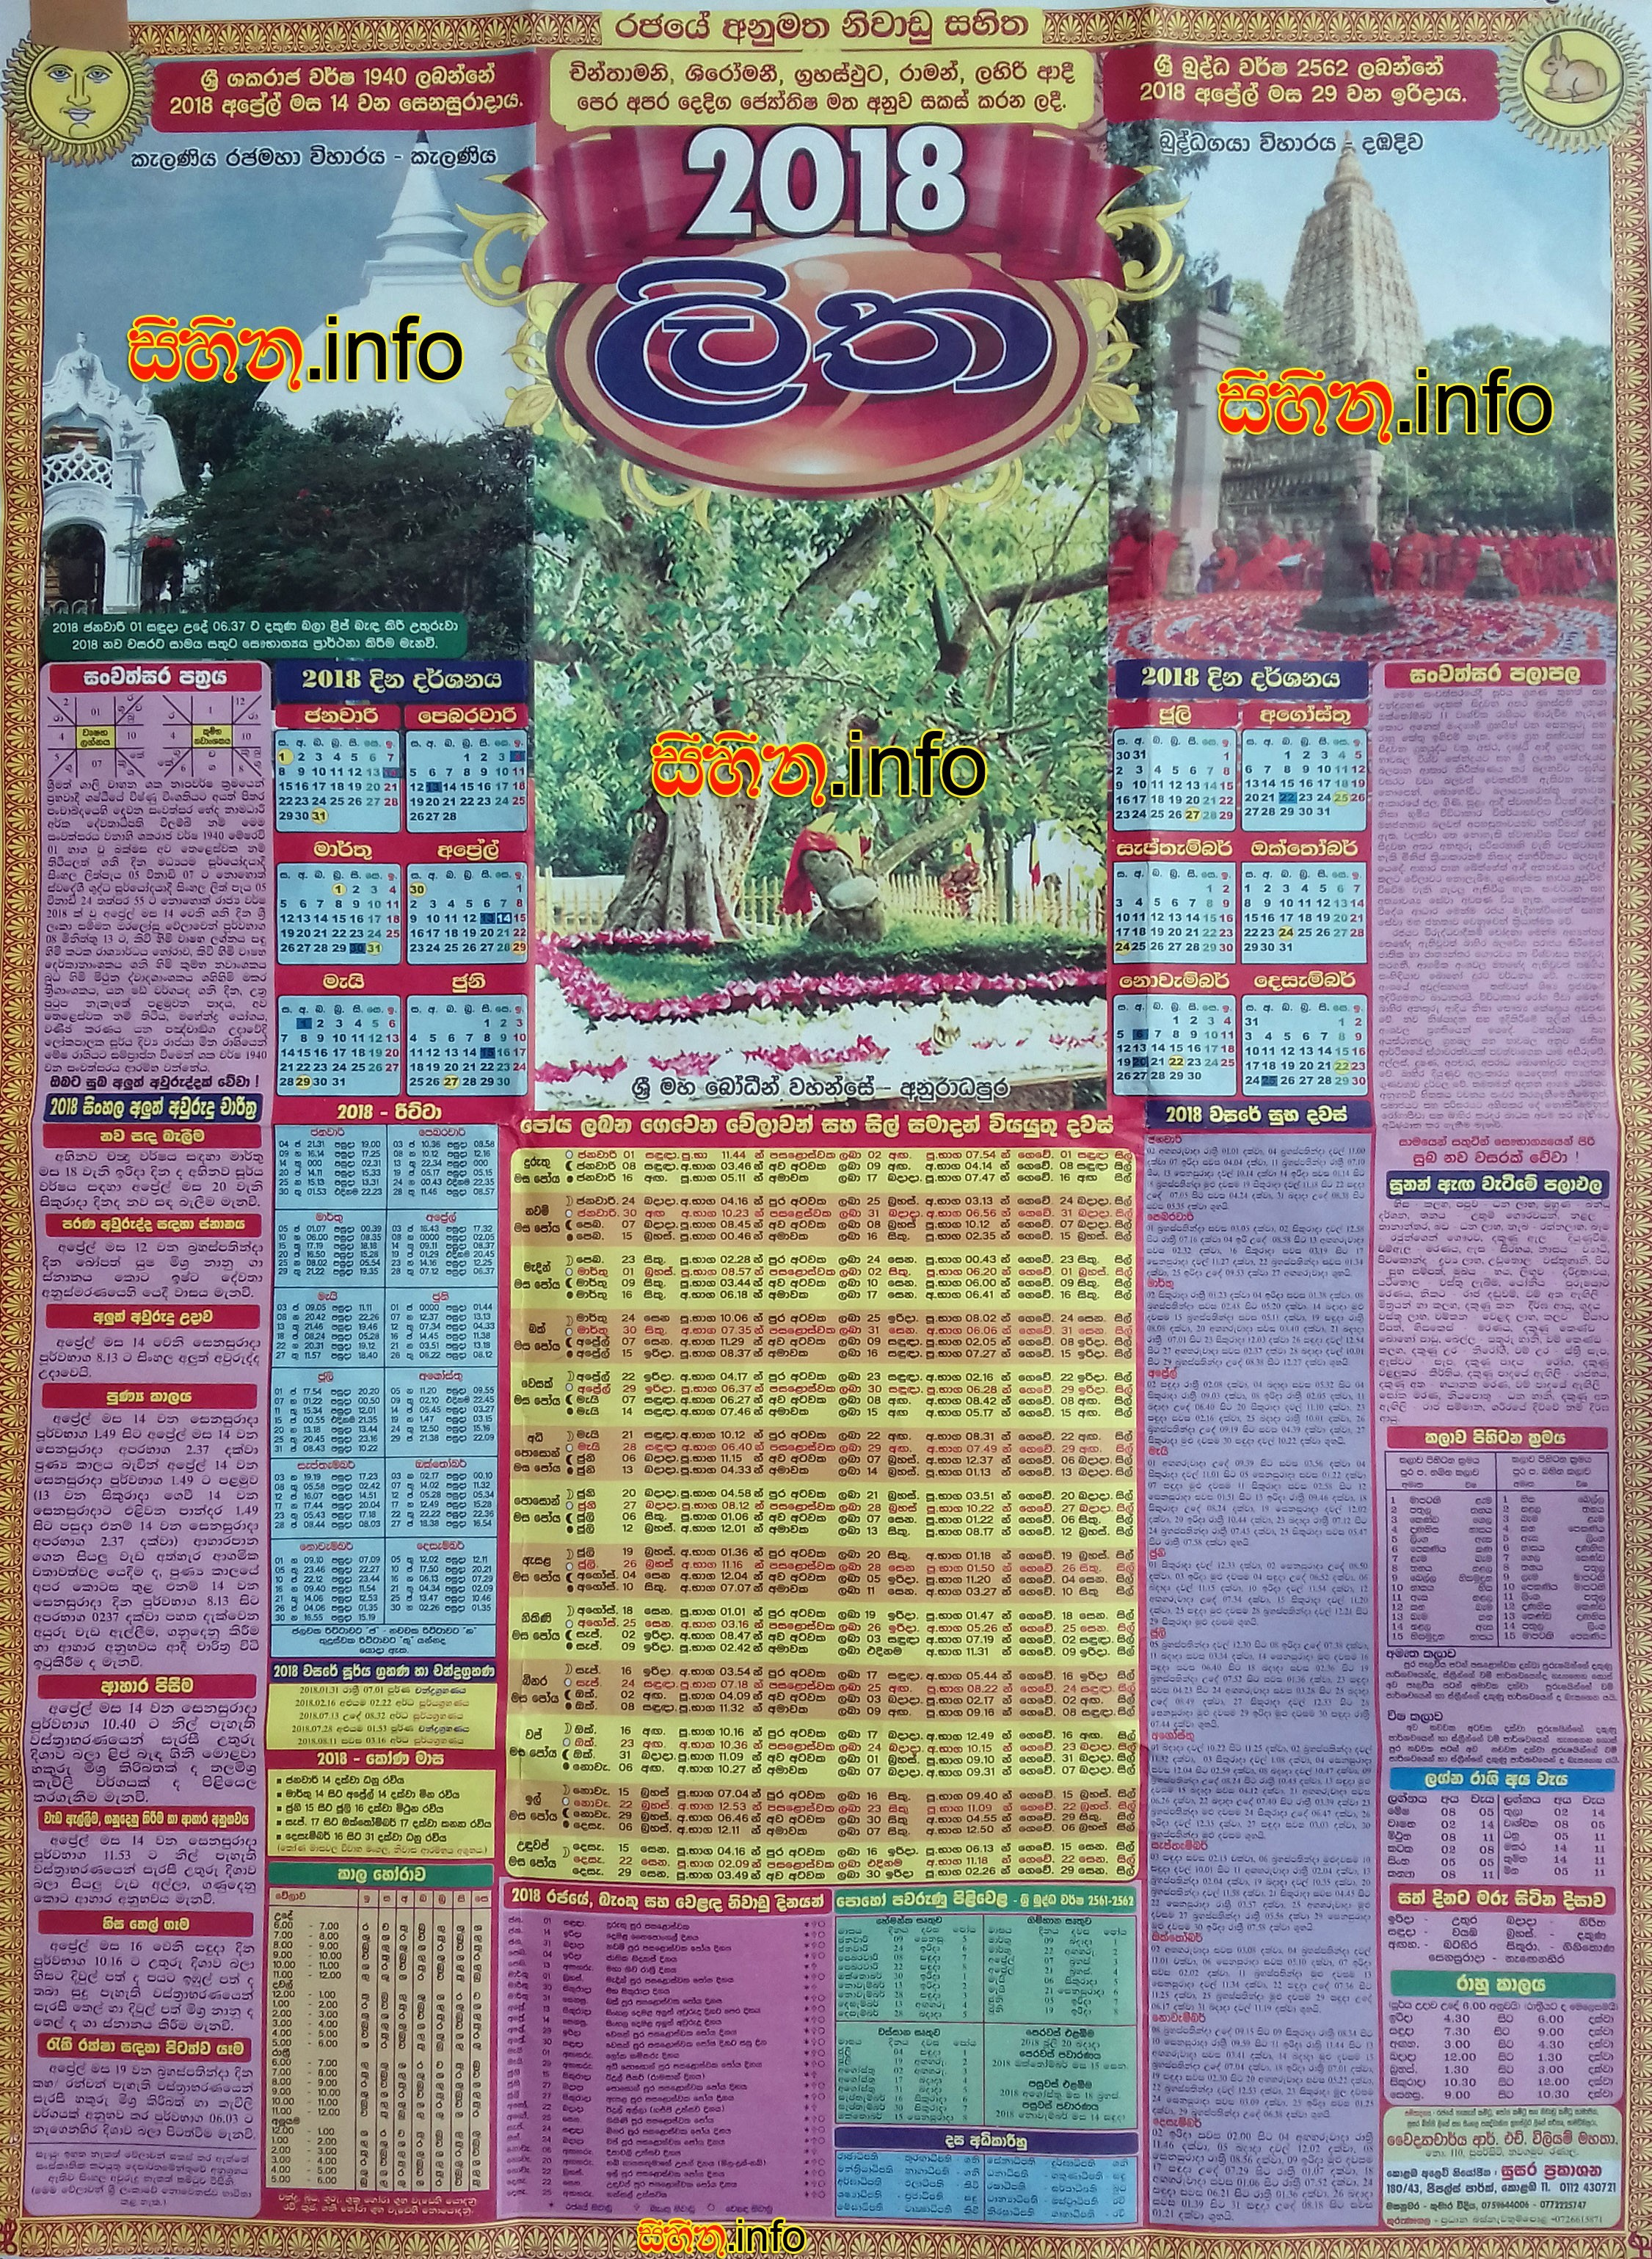 2019 March Calendar Sri Lanka Más Reciente Julian Calendar 2019 Quadax July 2018 Calendar Sri Lanka – Calendar Of 2019 March Calendar Sri Lanka Más Actual Sri Lanka Permanent Mission to the United Nations